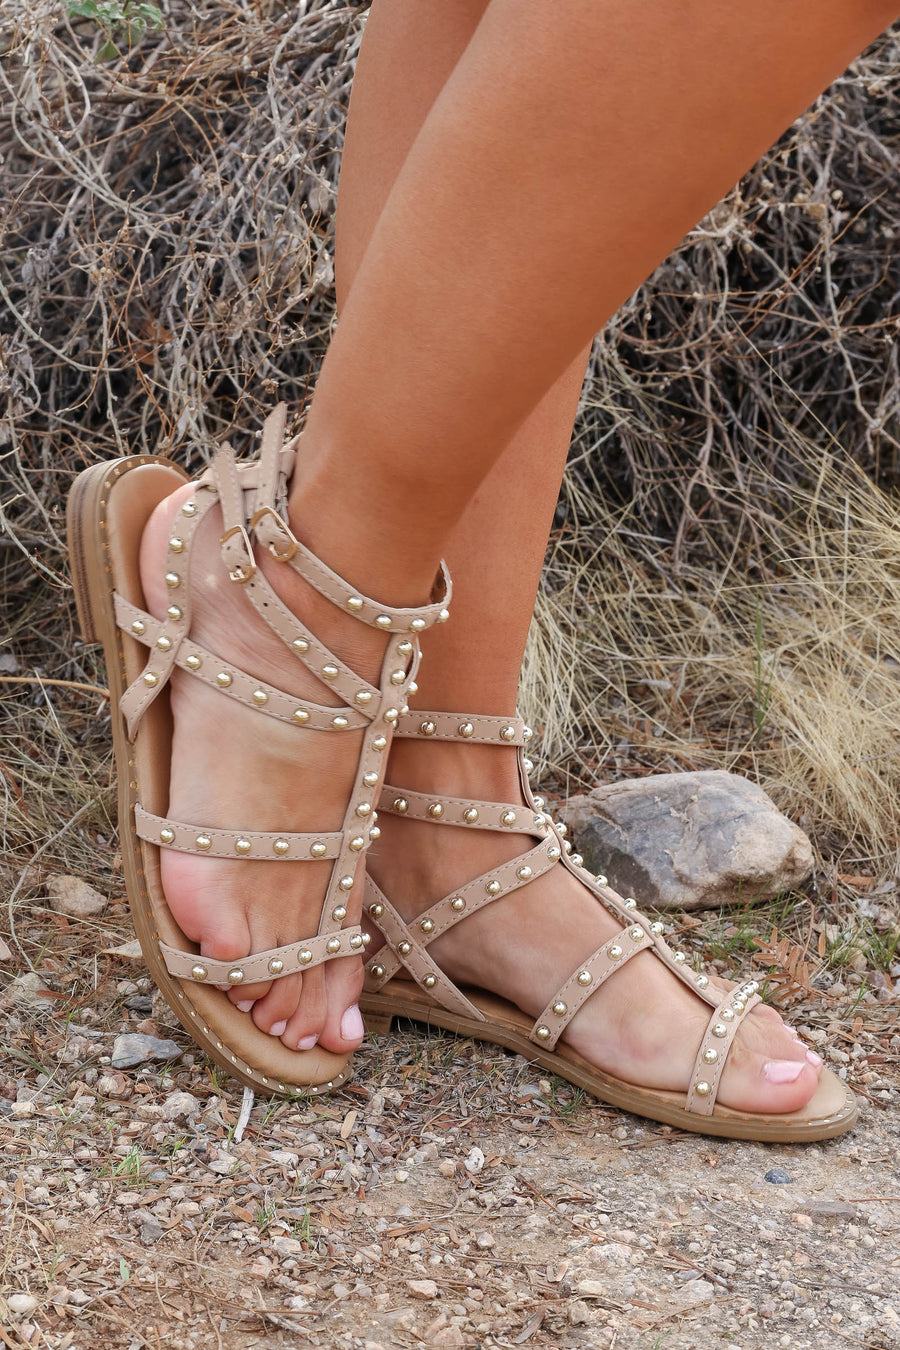 Shelby Studded Gladiator Sandal - Taupe closet candy wombs trendy strappy sandals with stud details 1